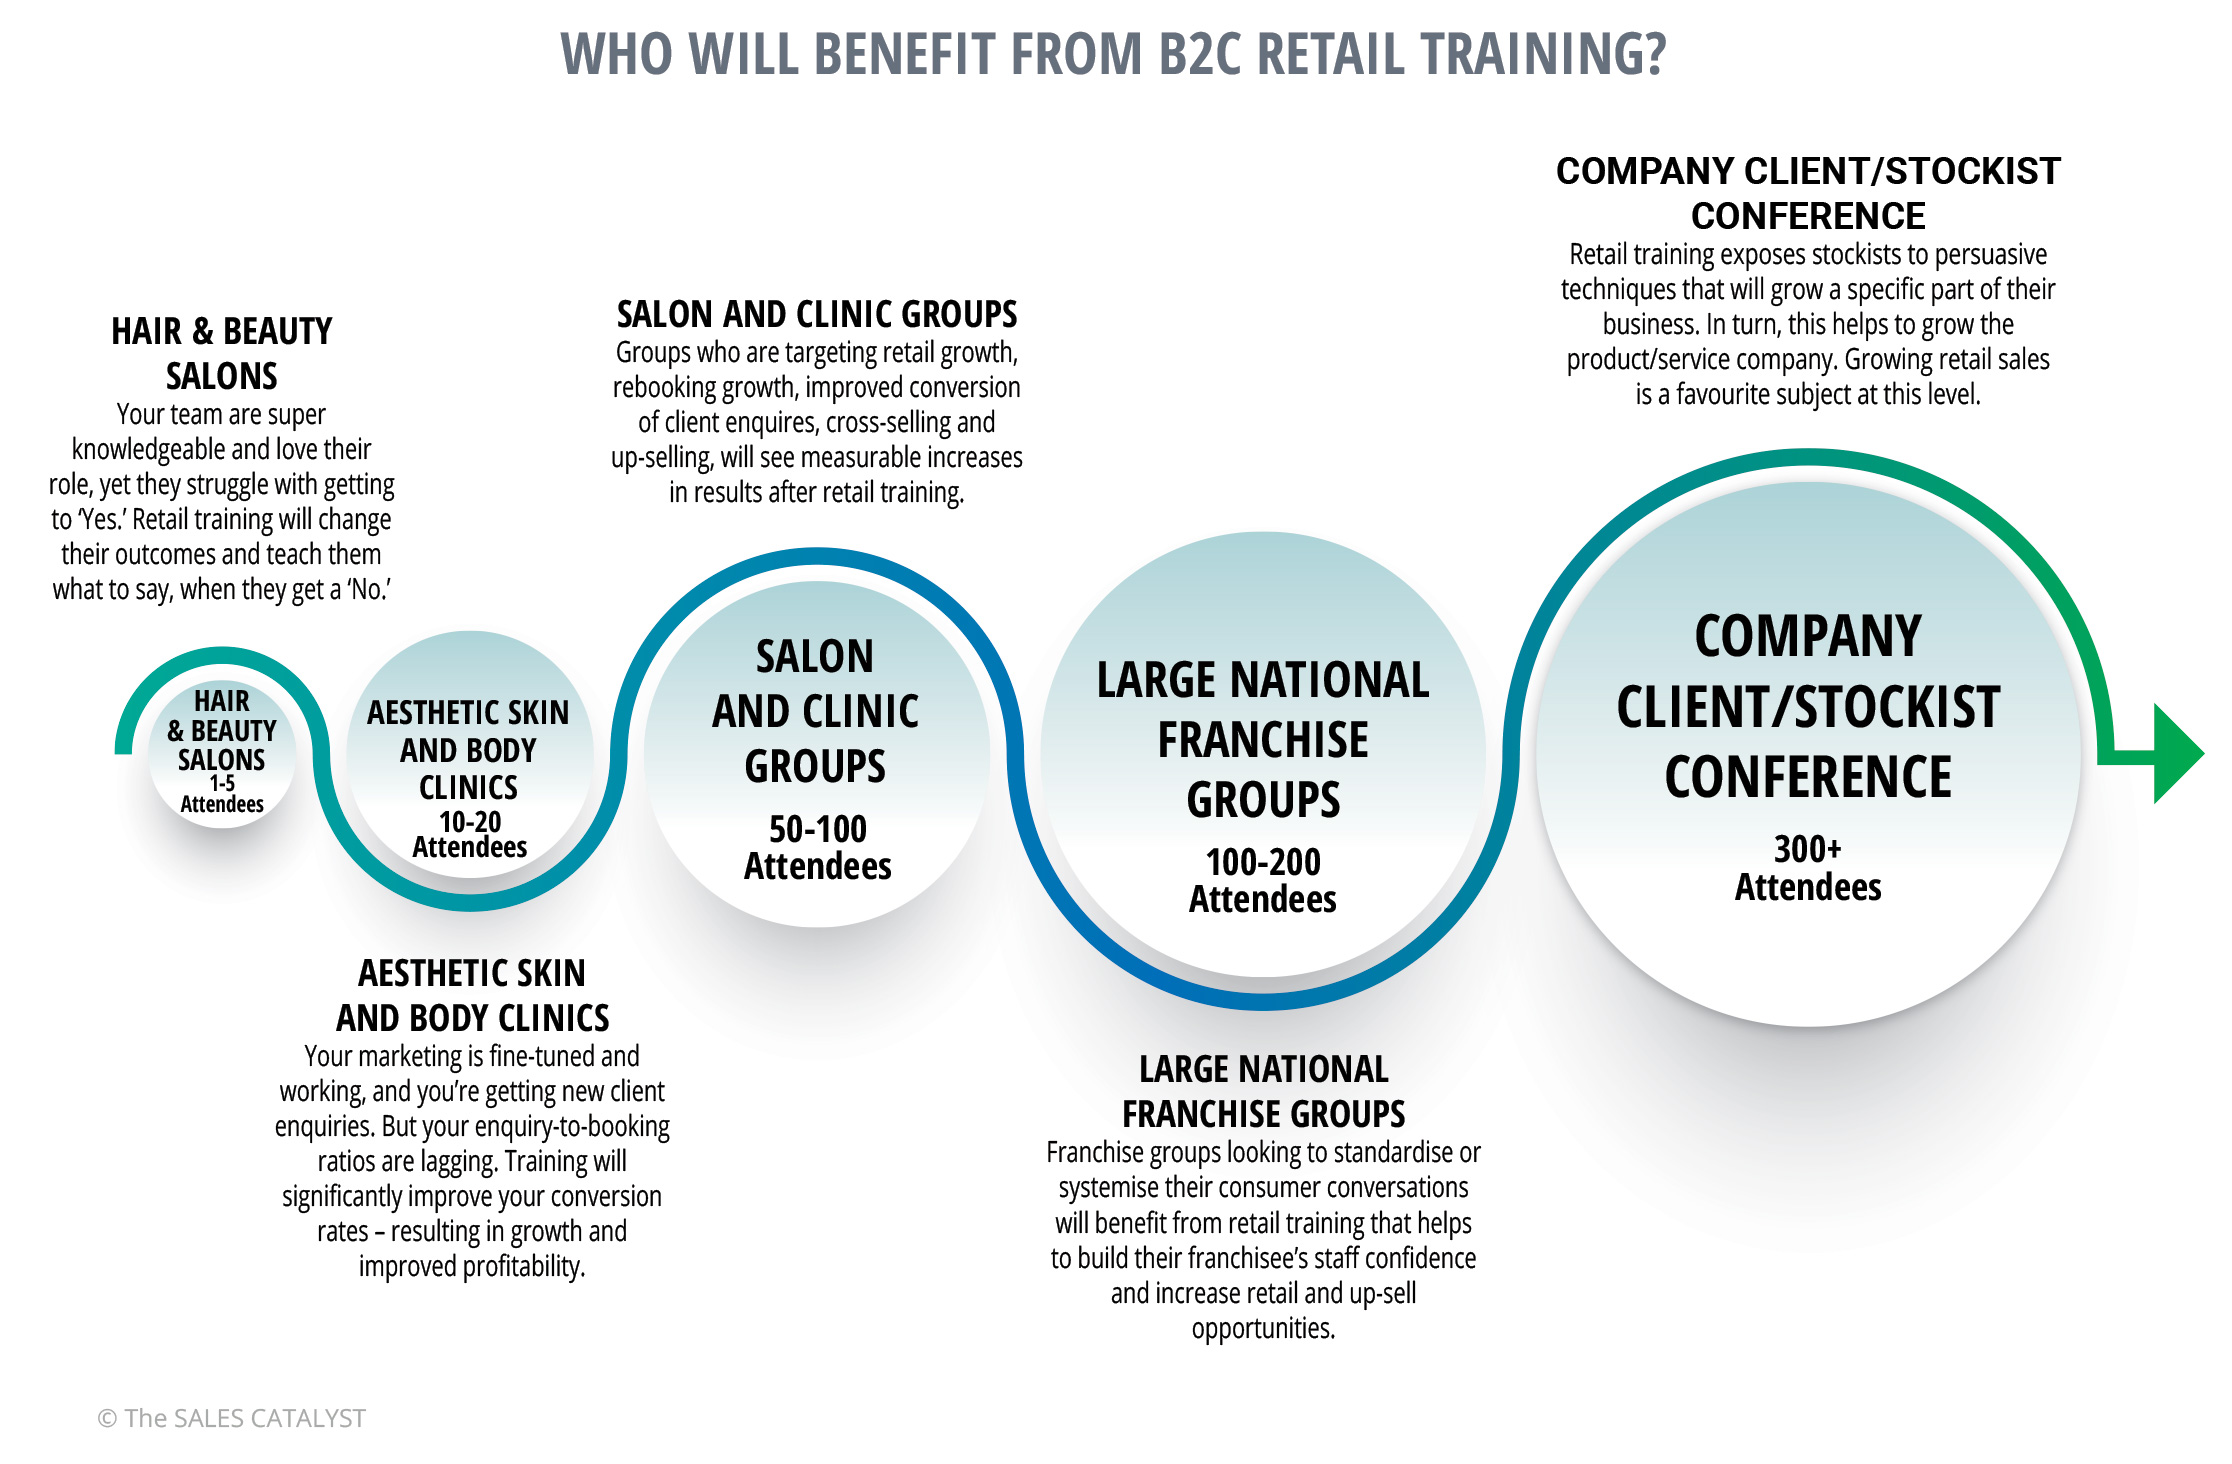 retail training | The Sales Catalyst